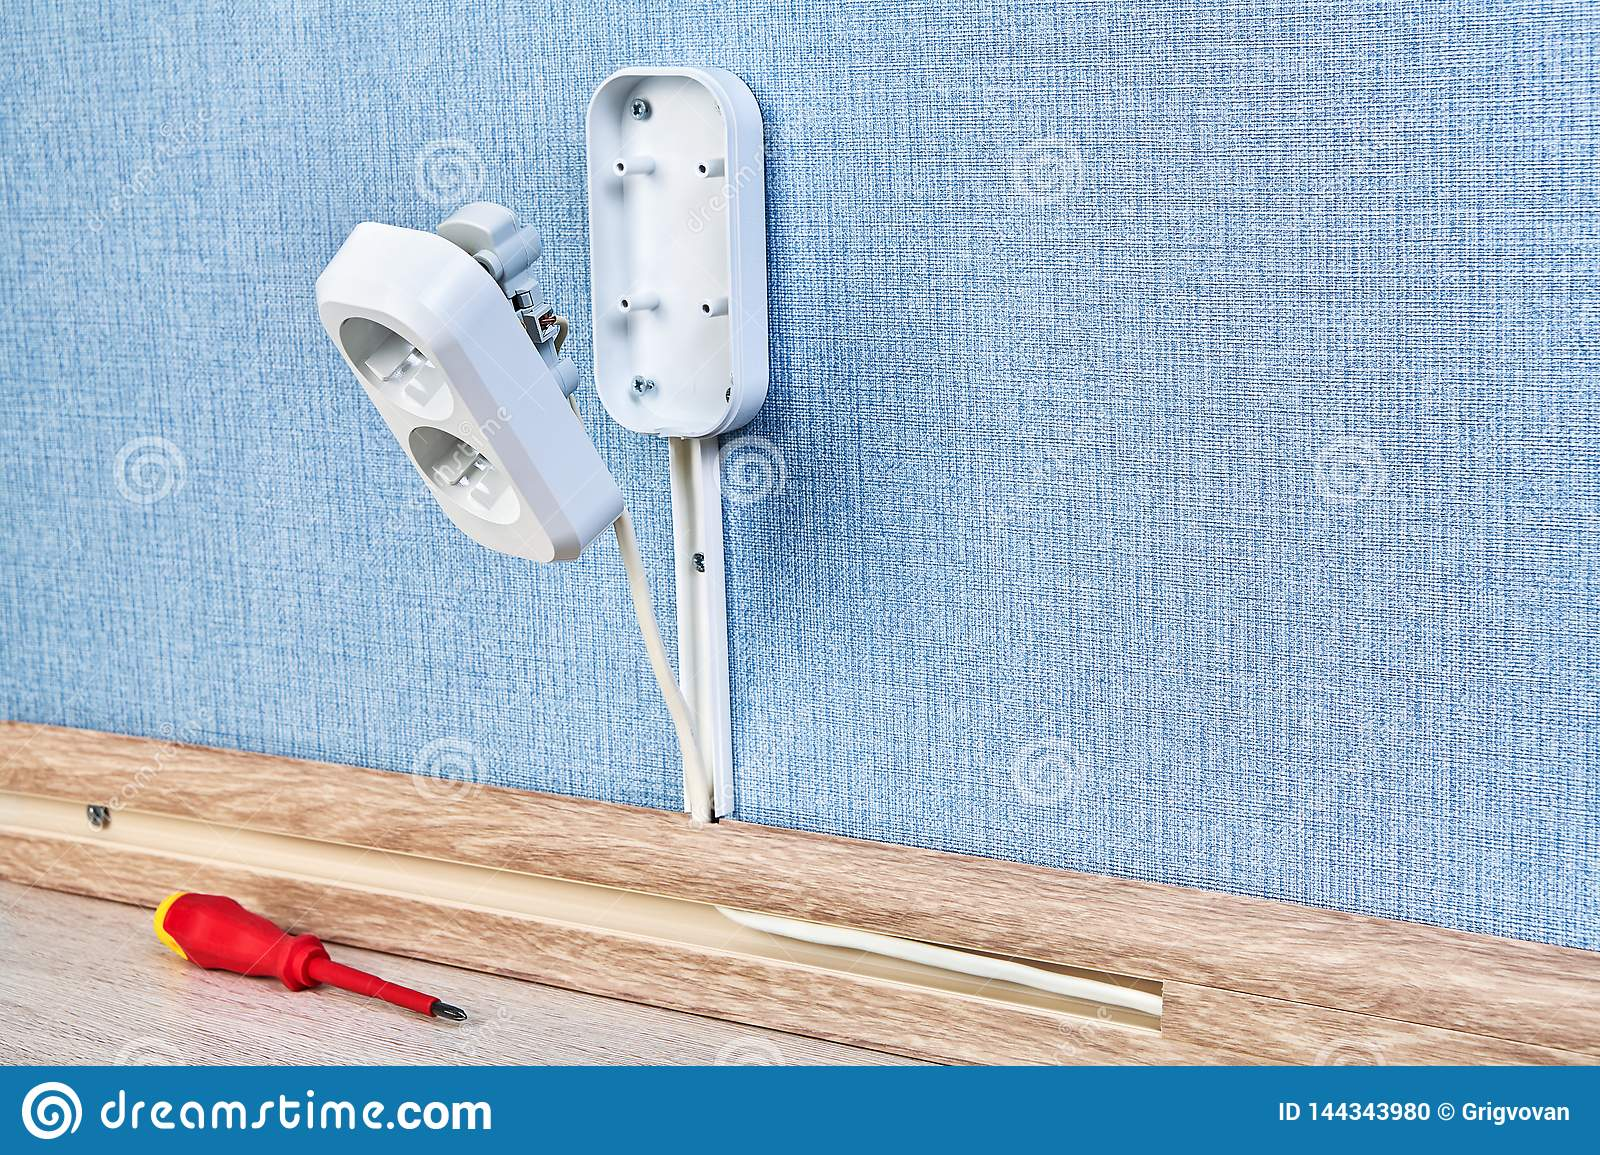 Electrical Wiring Installation Of Socket Stock Photo Image Of Screwdriver Connection 144343980